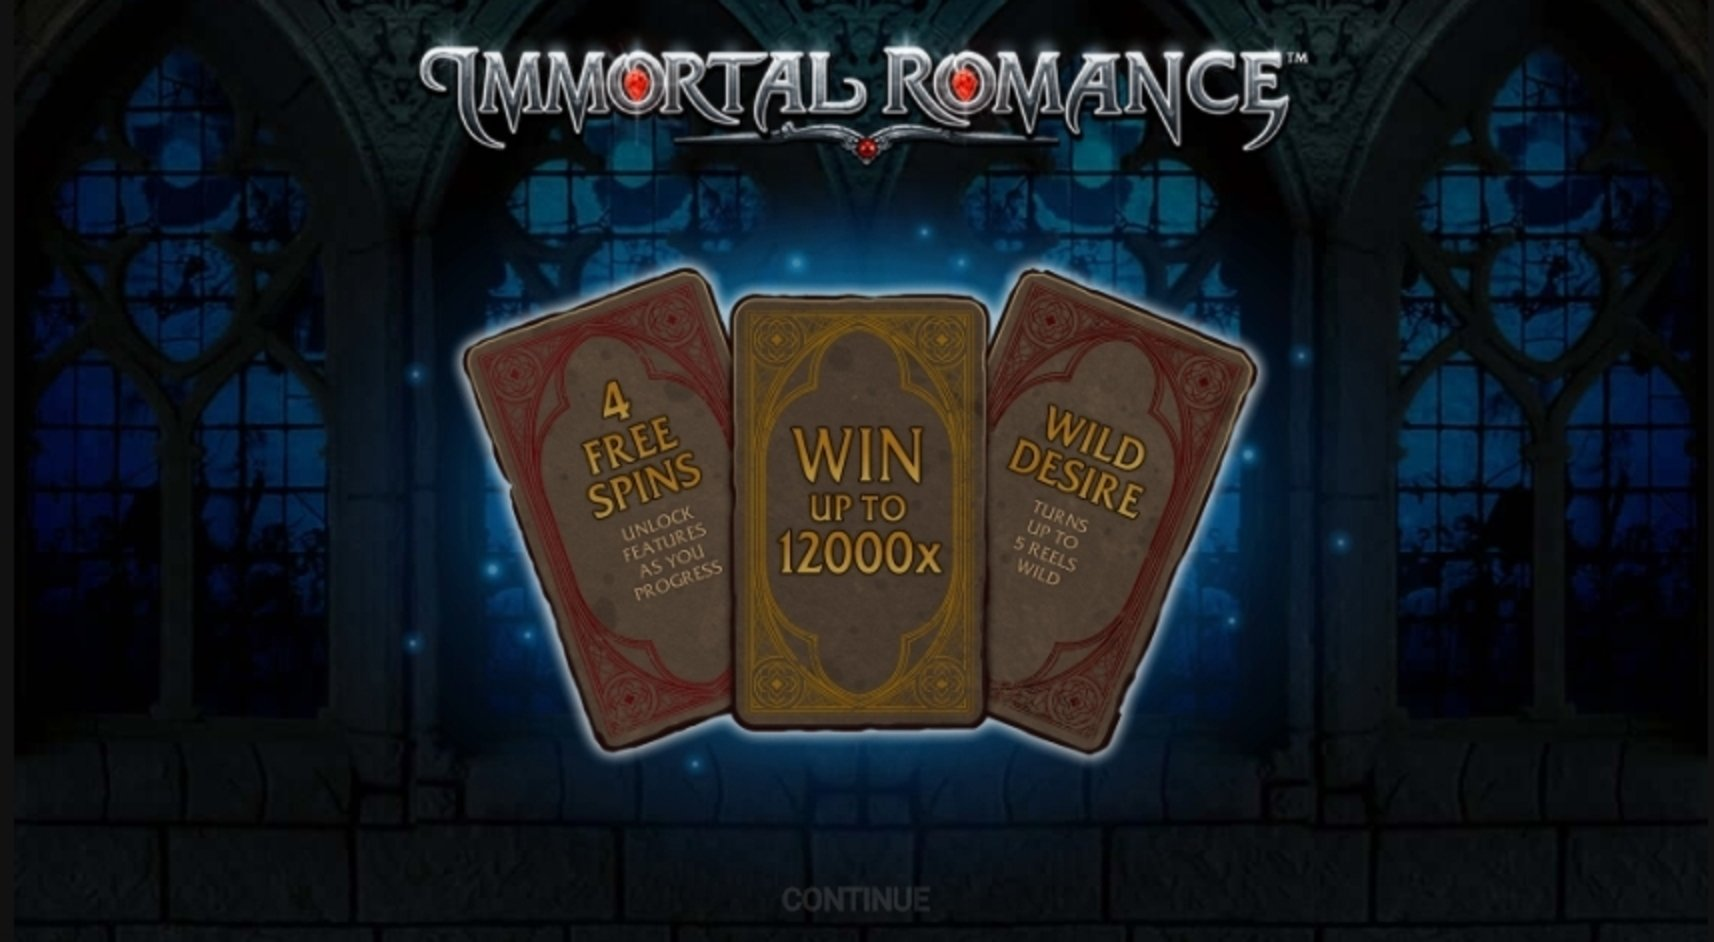 Play Immortal Romance Free Casino Slot Game by Microgaming